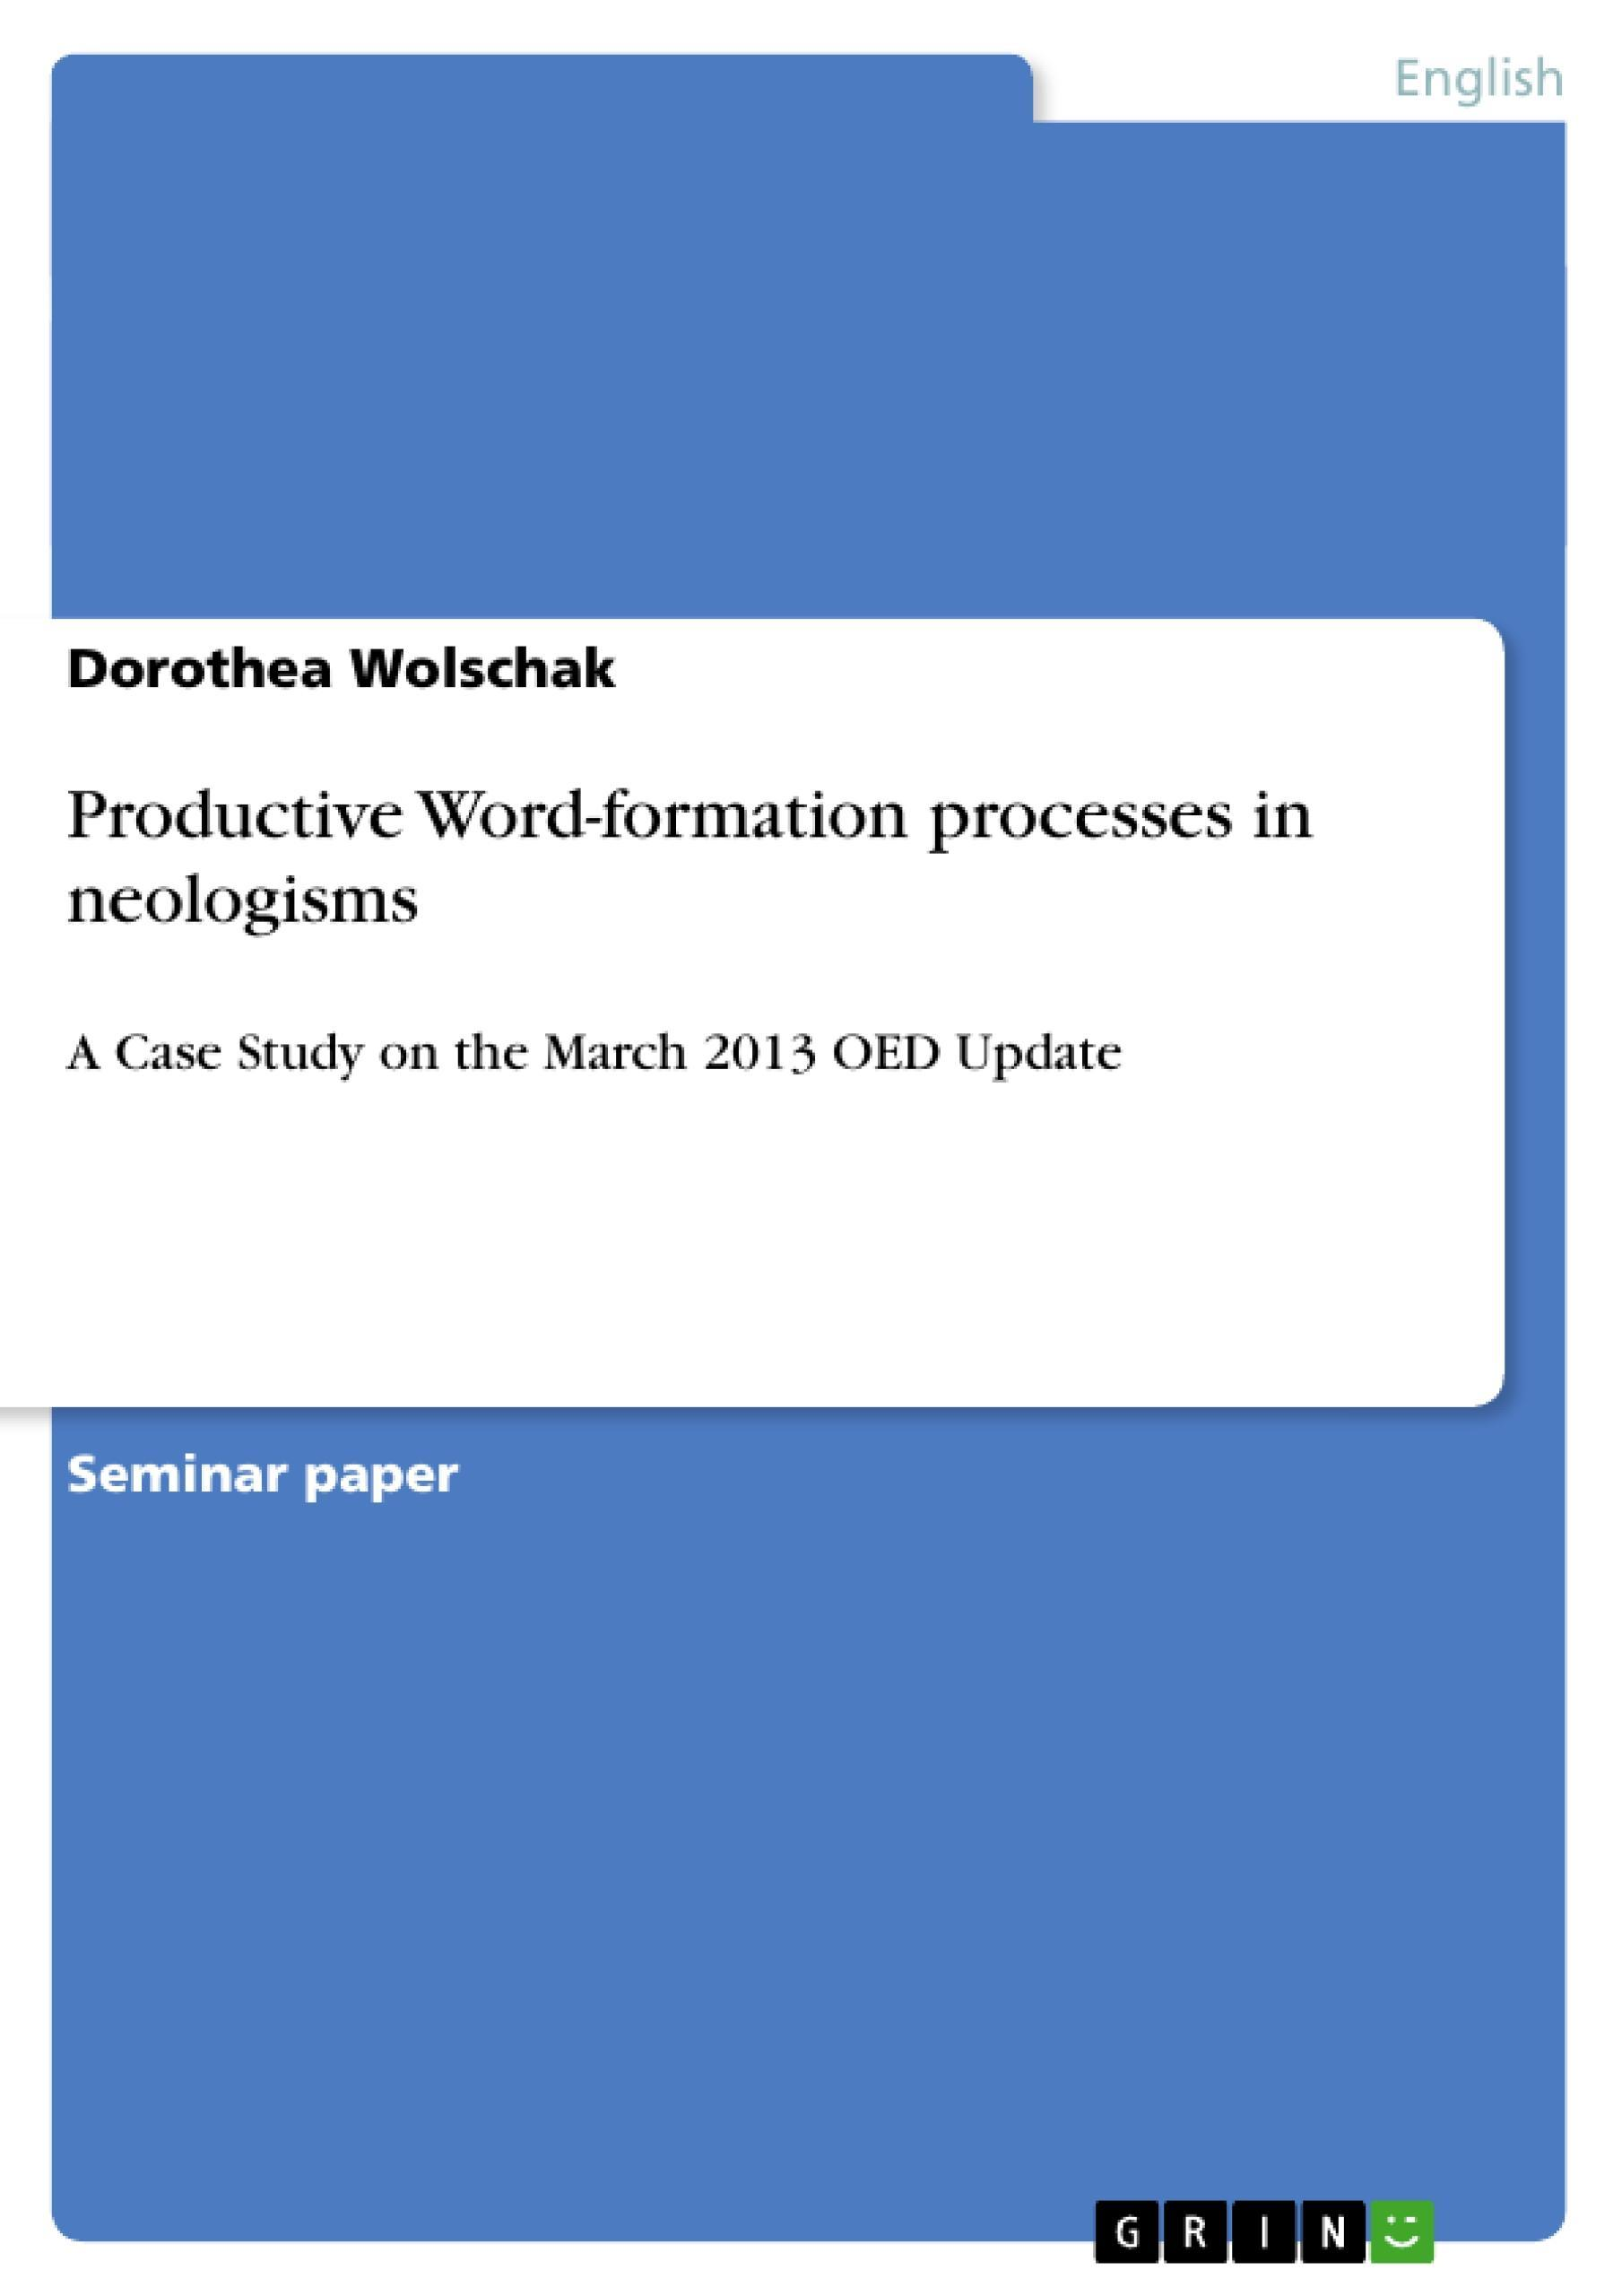 Productive word-formation processes in neologisms Dorothea Wolschak